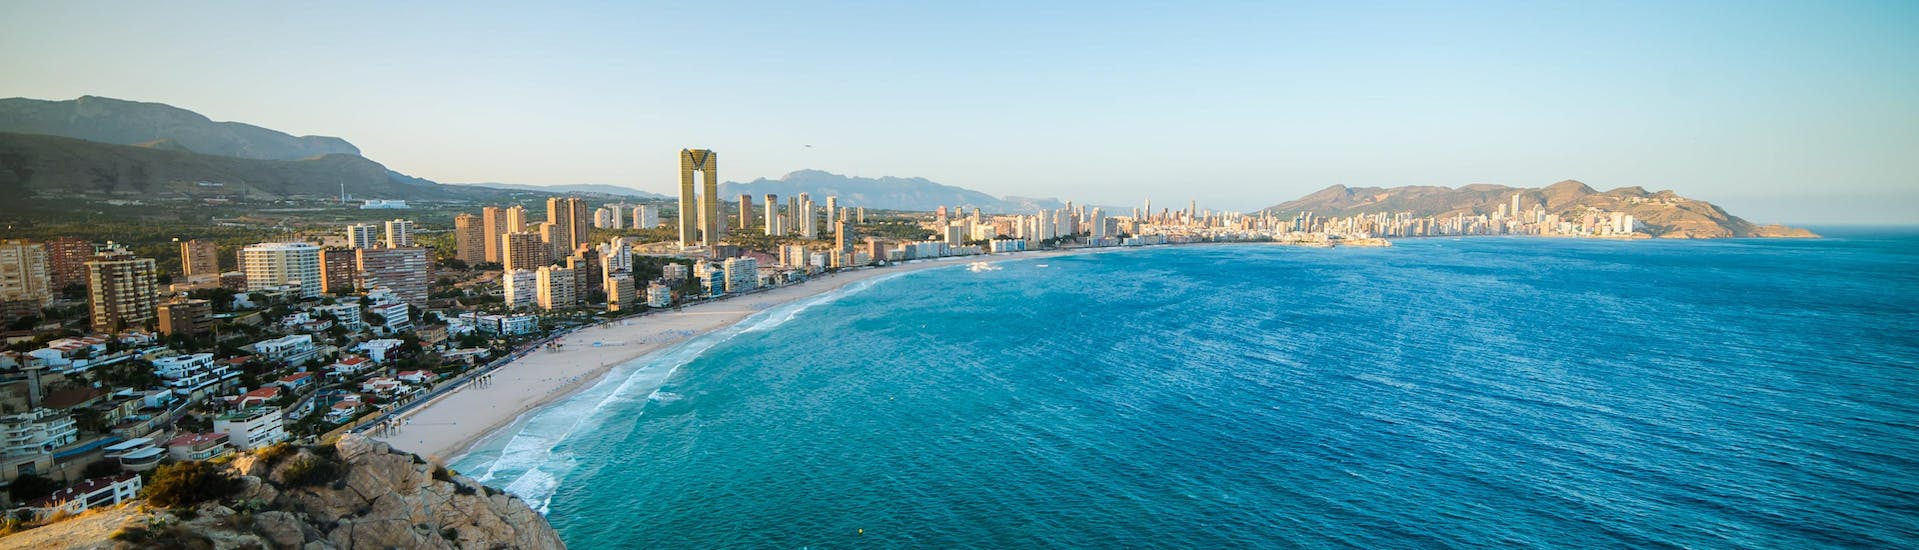 An image of the sandy beach on which you can ride a jet ski and do other water sports activities in Benidorm.